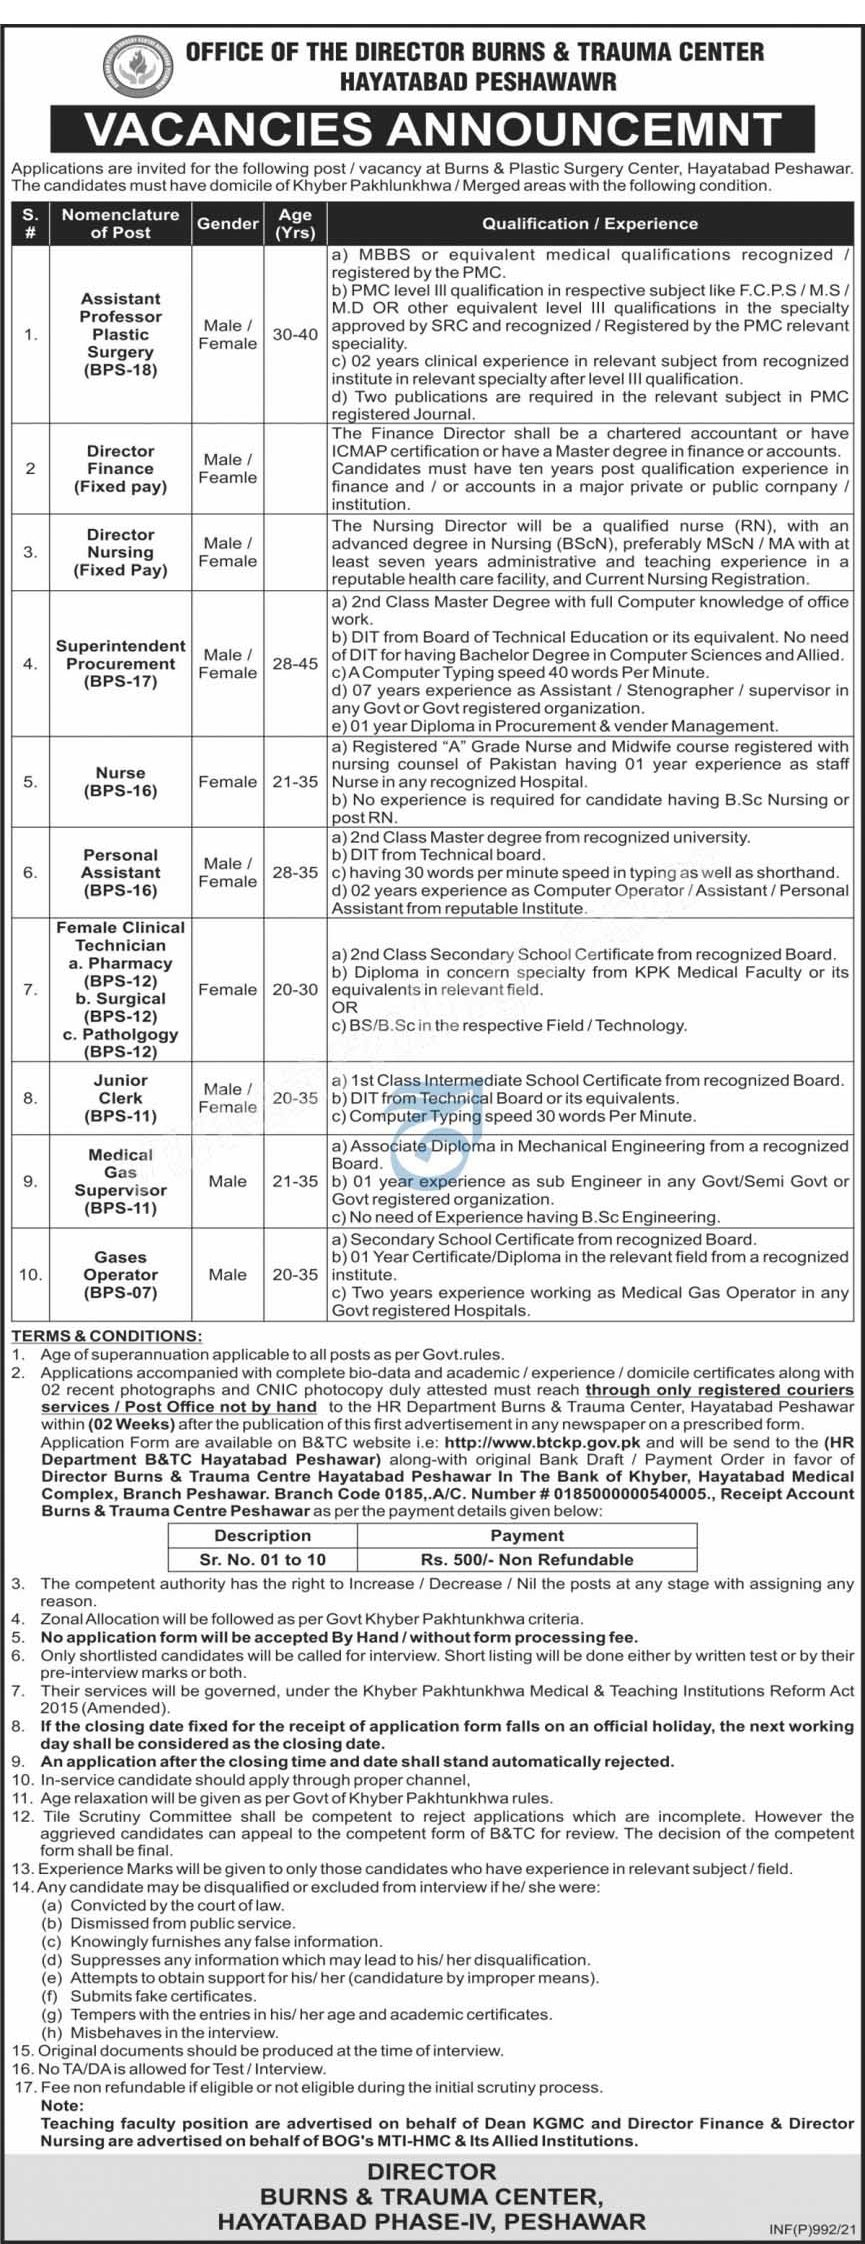 Burns & Trauma Center Hayatabad Peshawar Jobs Feb 2021